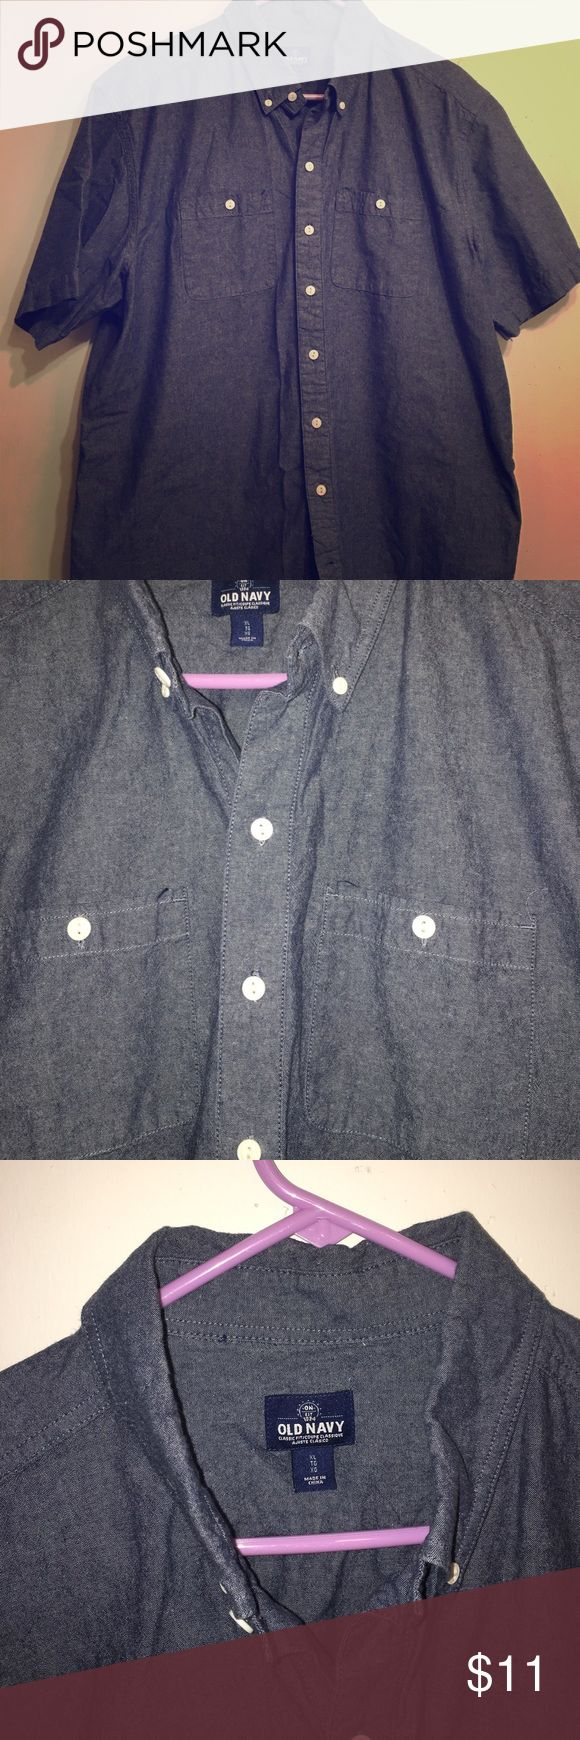 Old navy short sleeve denim shirt for men Old navy dark blue denim shirt with white buttons and short sleeves Old Navy Shirts Casual Button Down Shirts